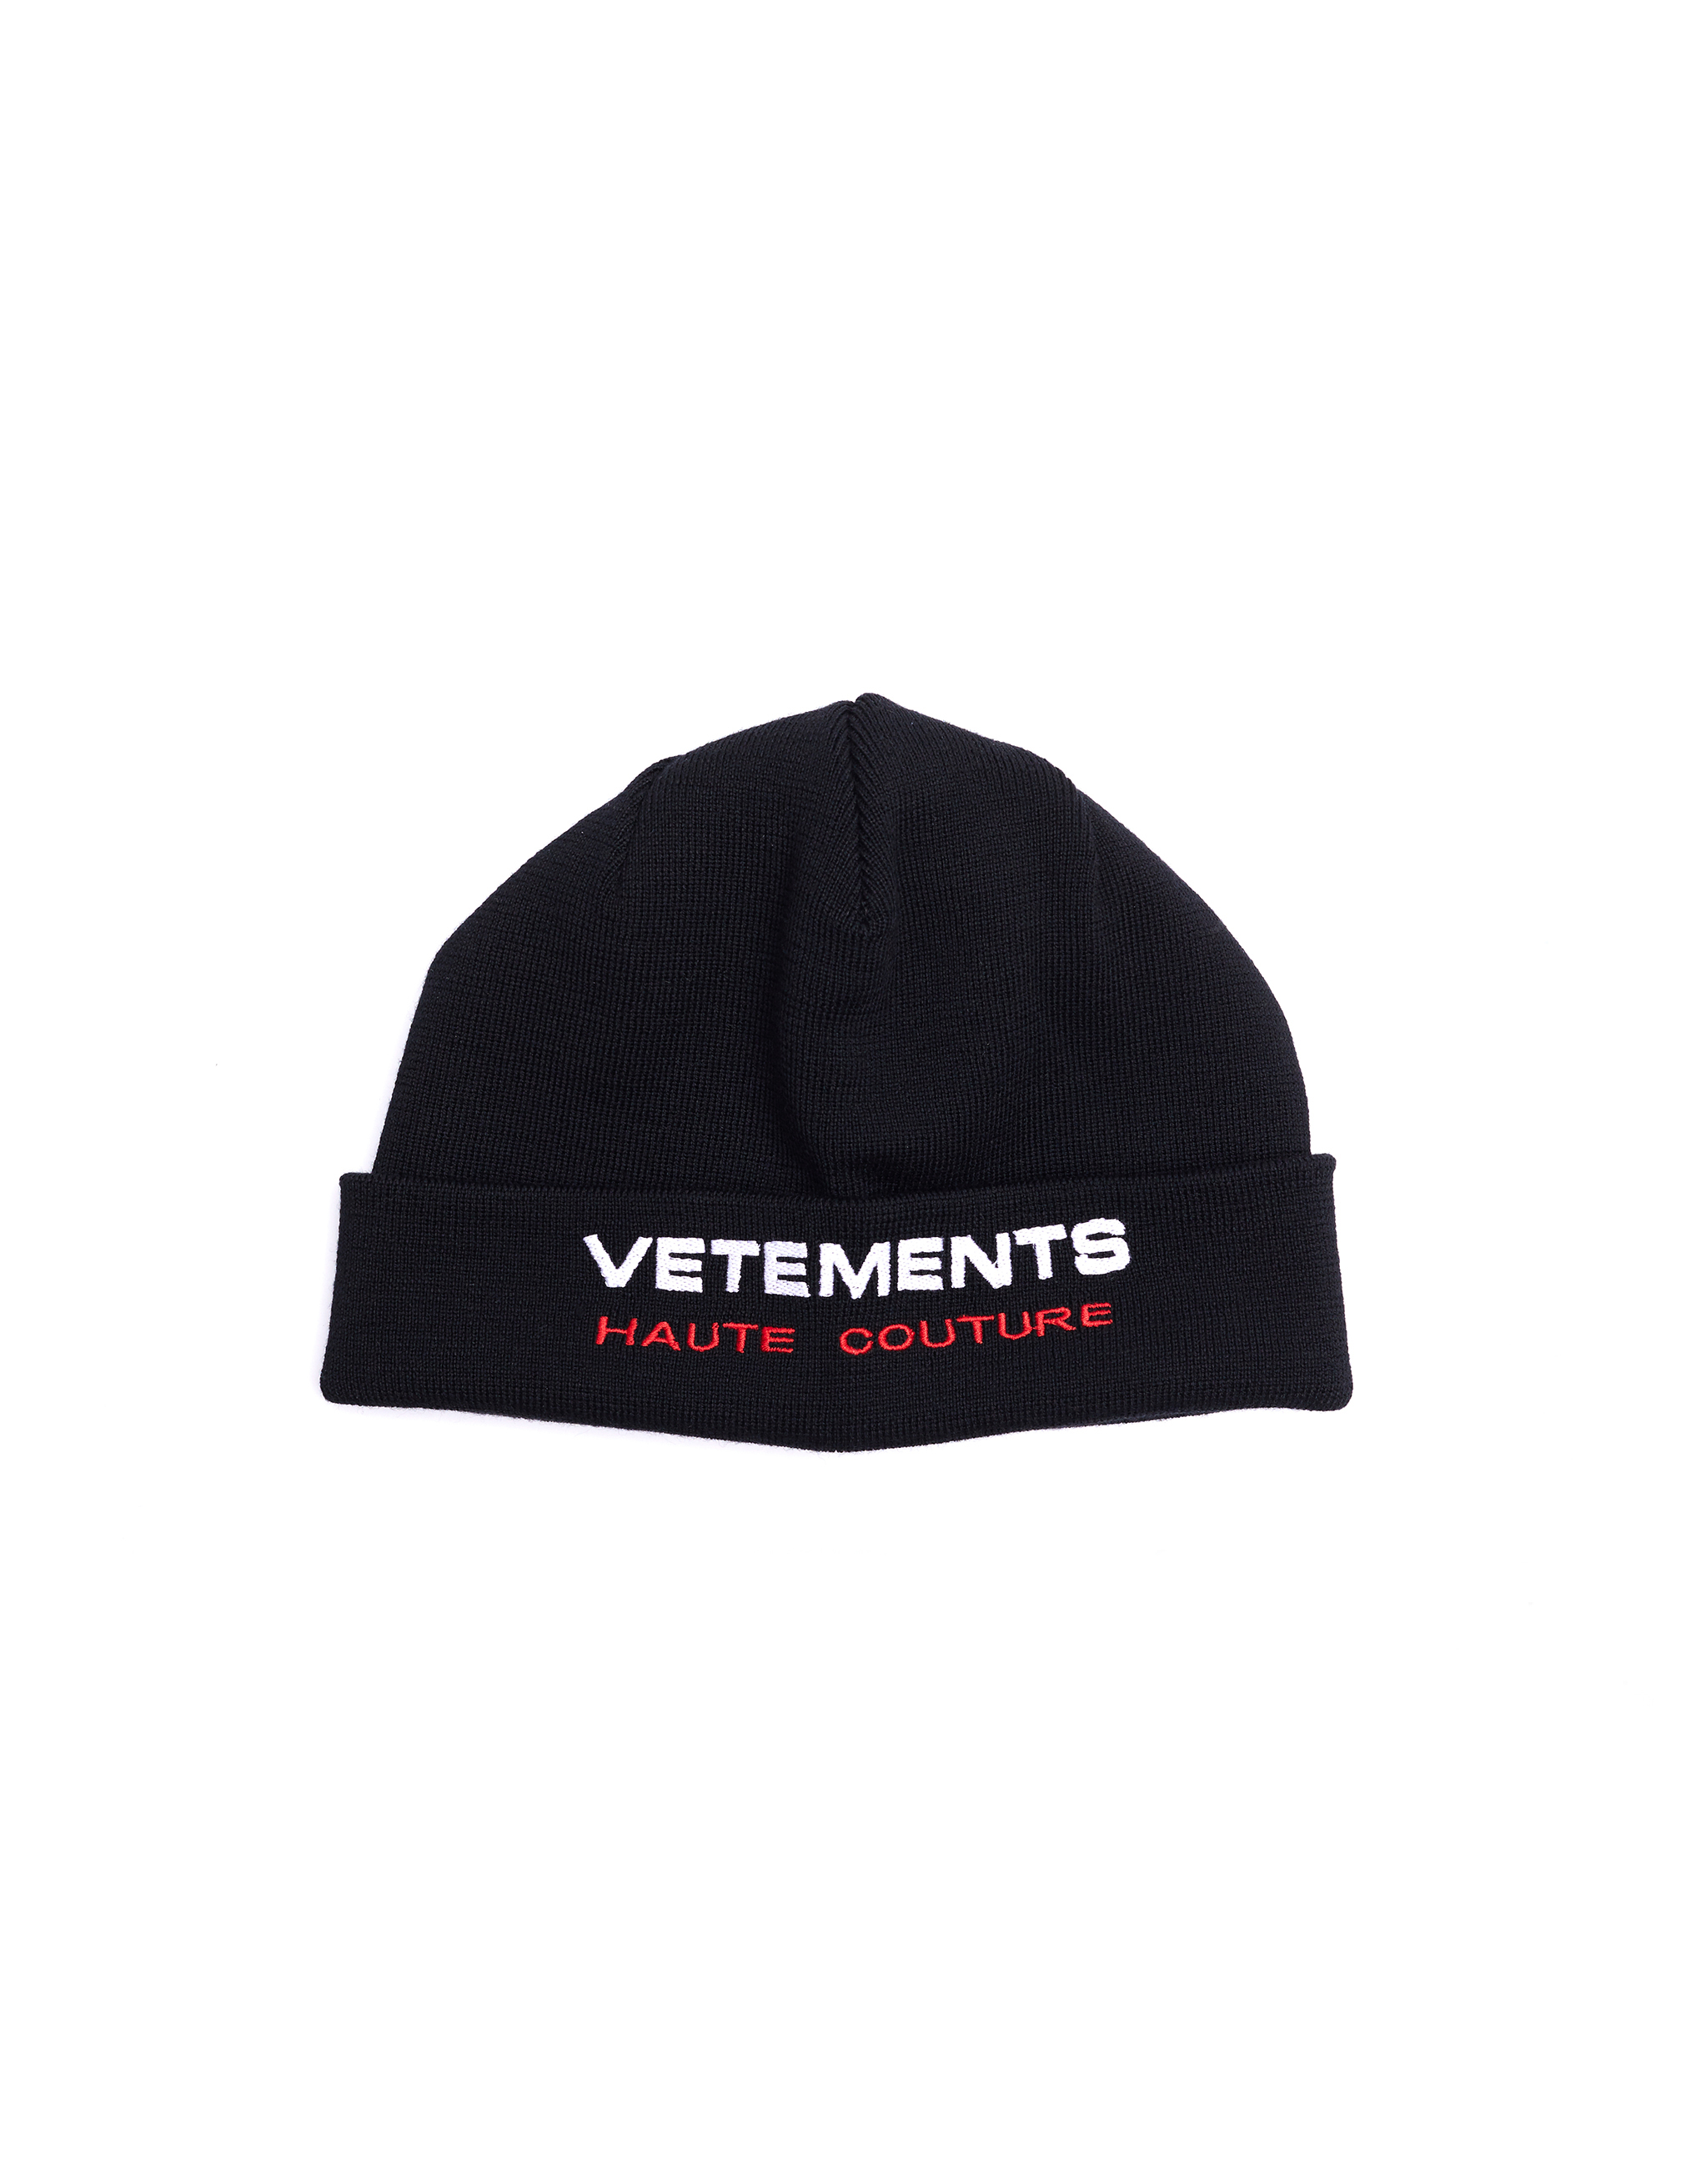 Vetements Haute Couture Embroidered Wool Hat